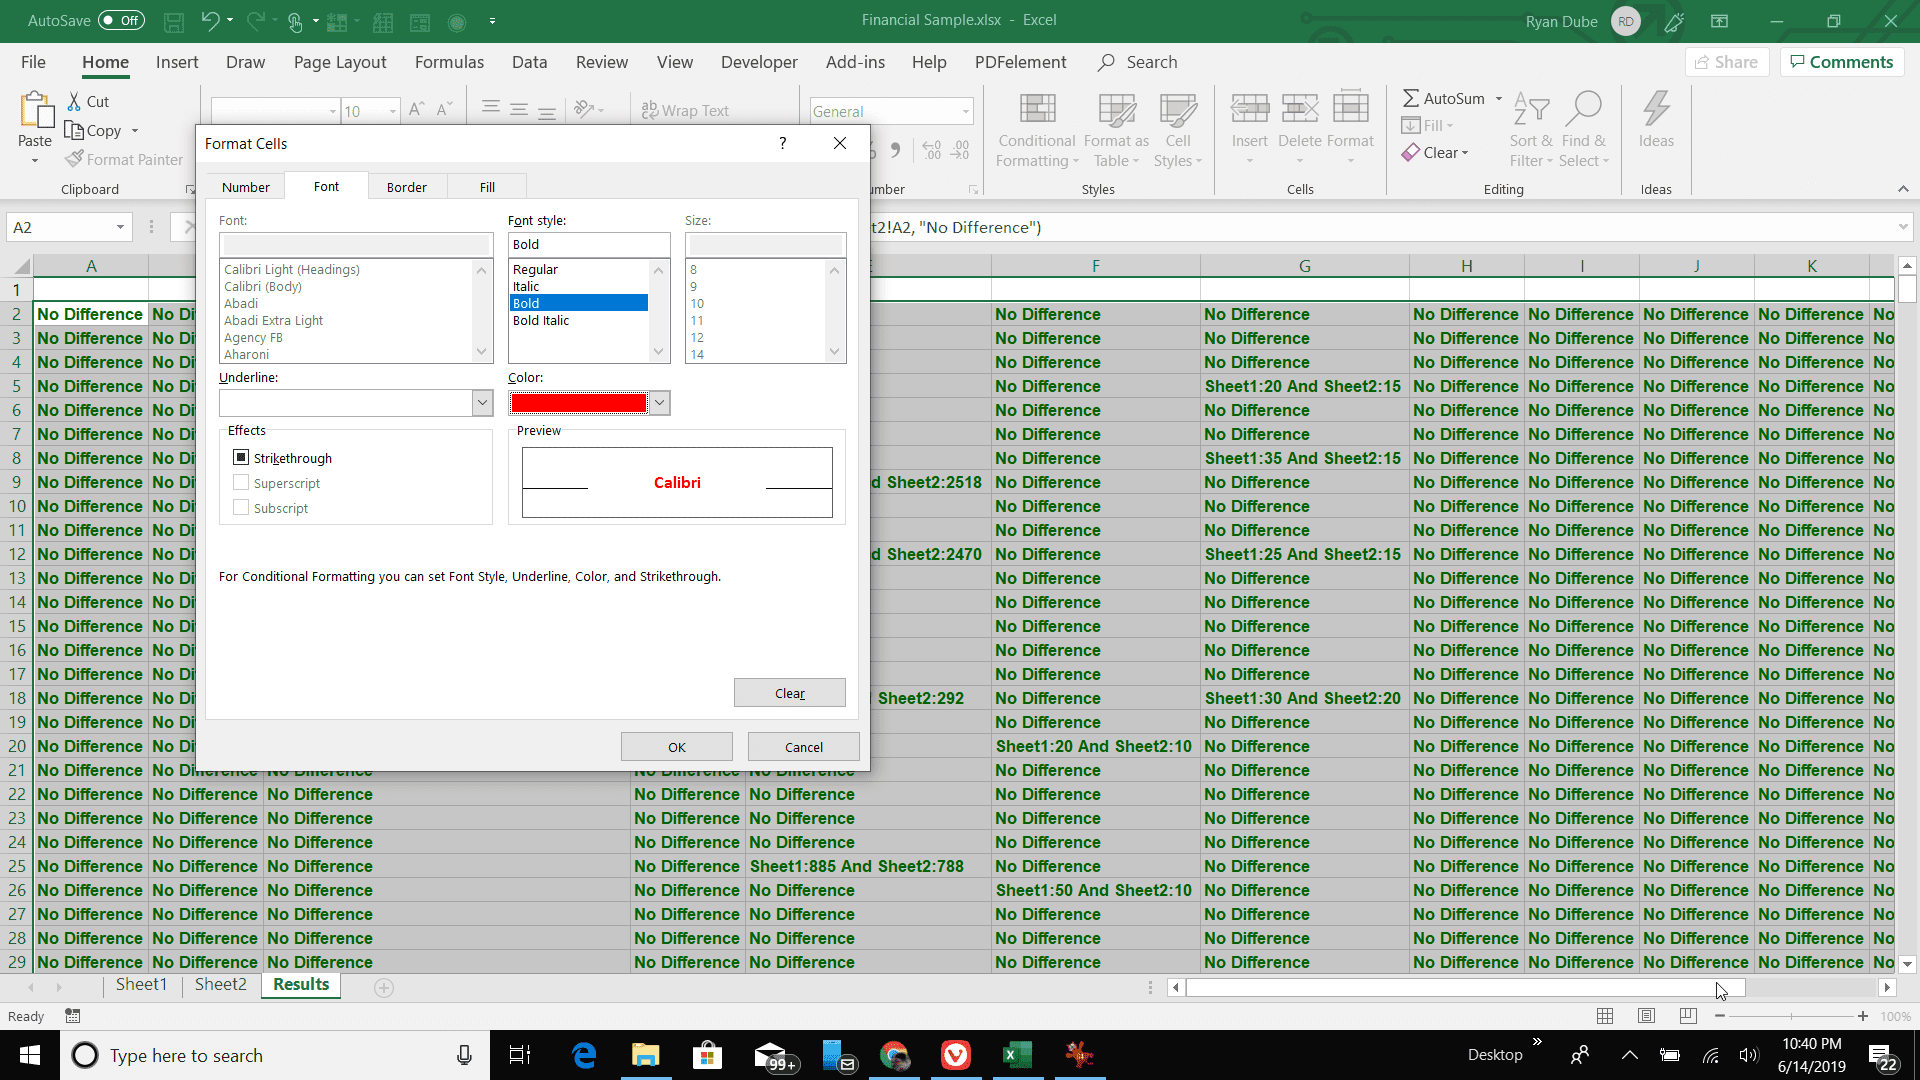 How To Compare Two Excel Files